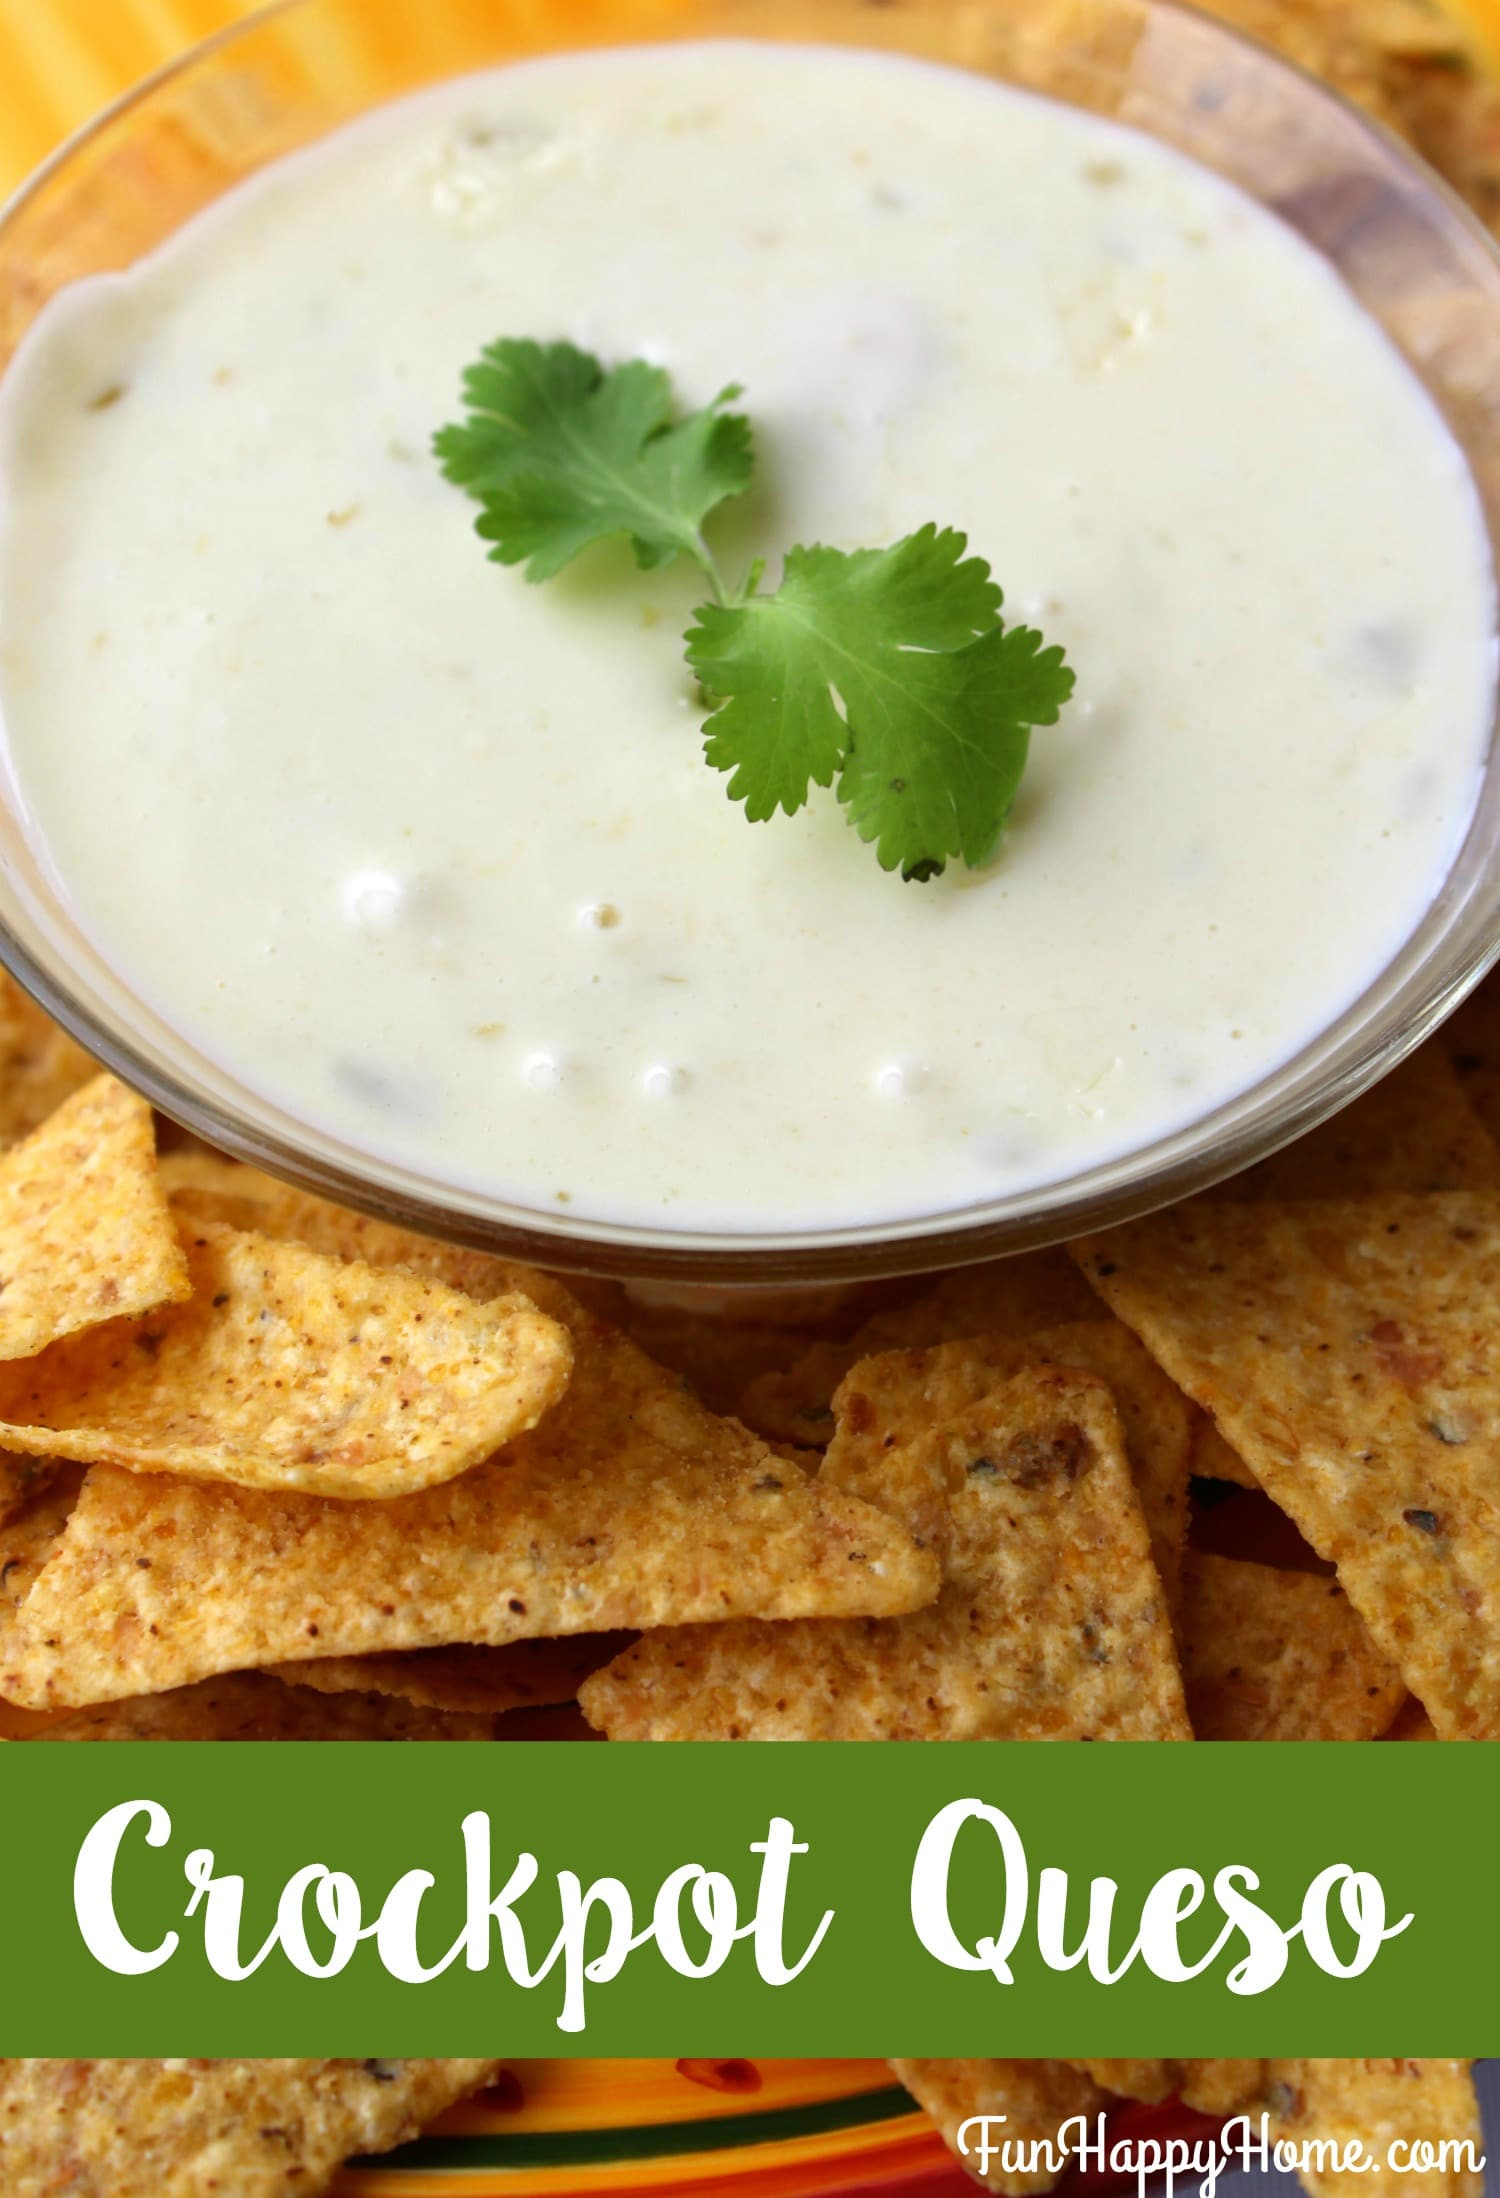 Easy Crockpot Queso Recipe from FunHappyHome.com